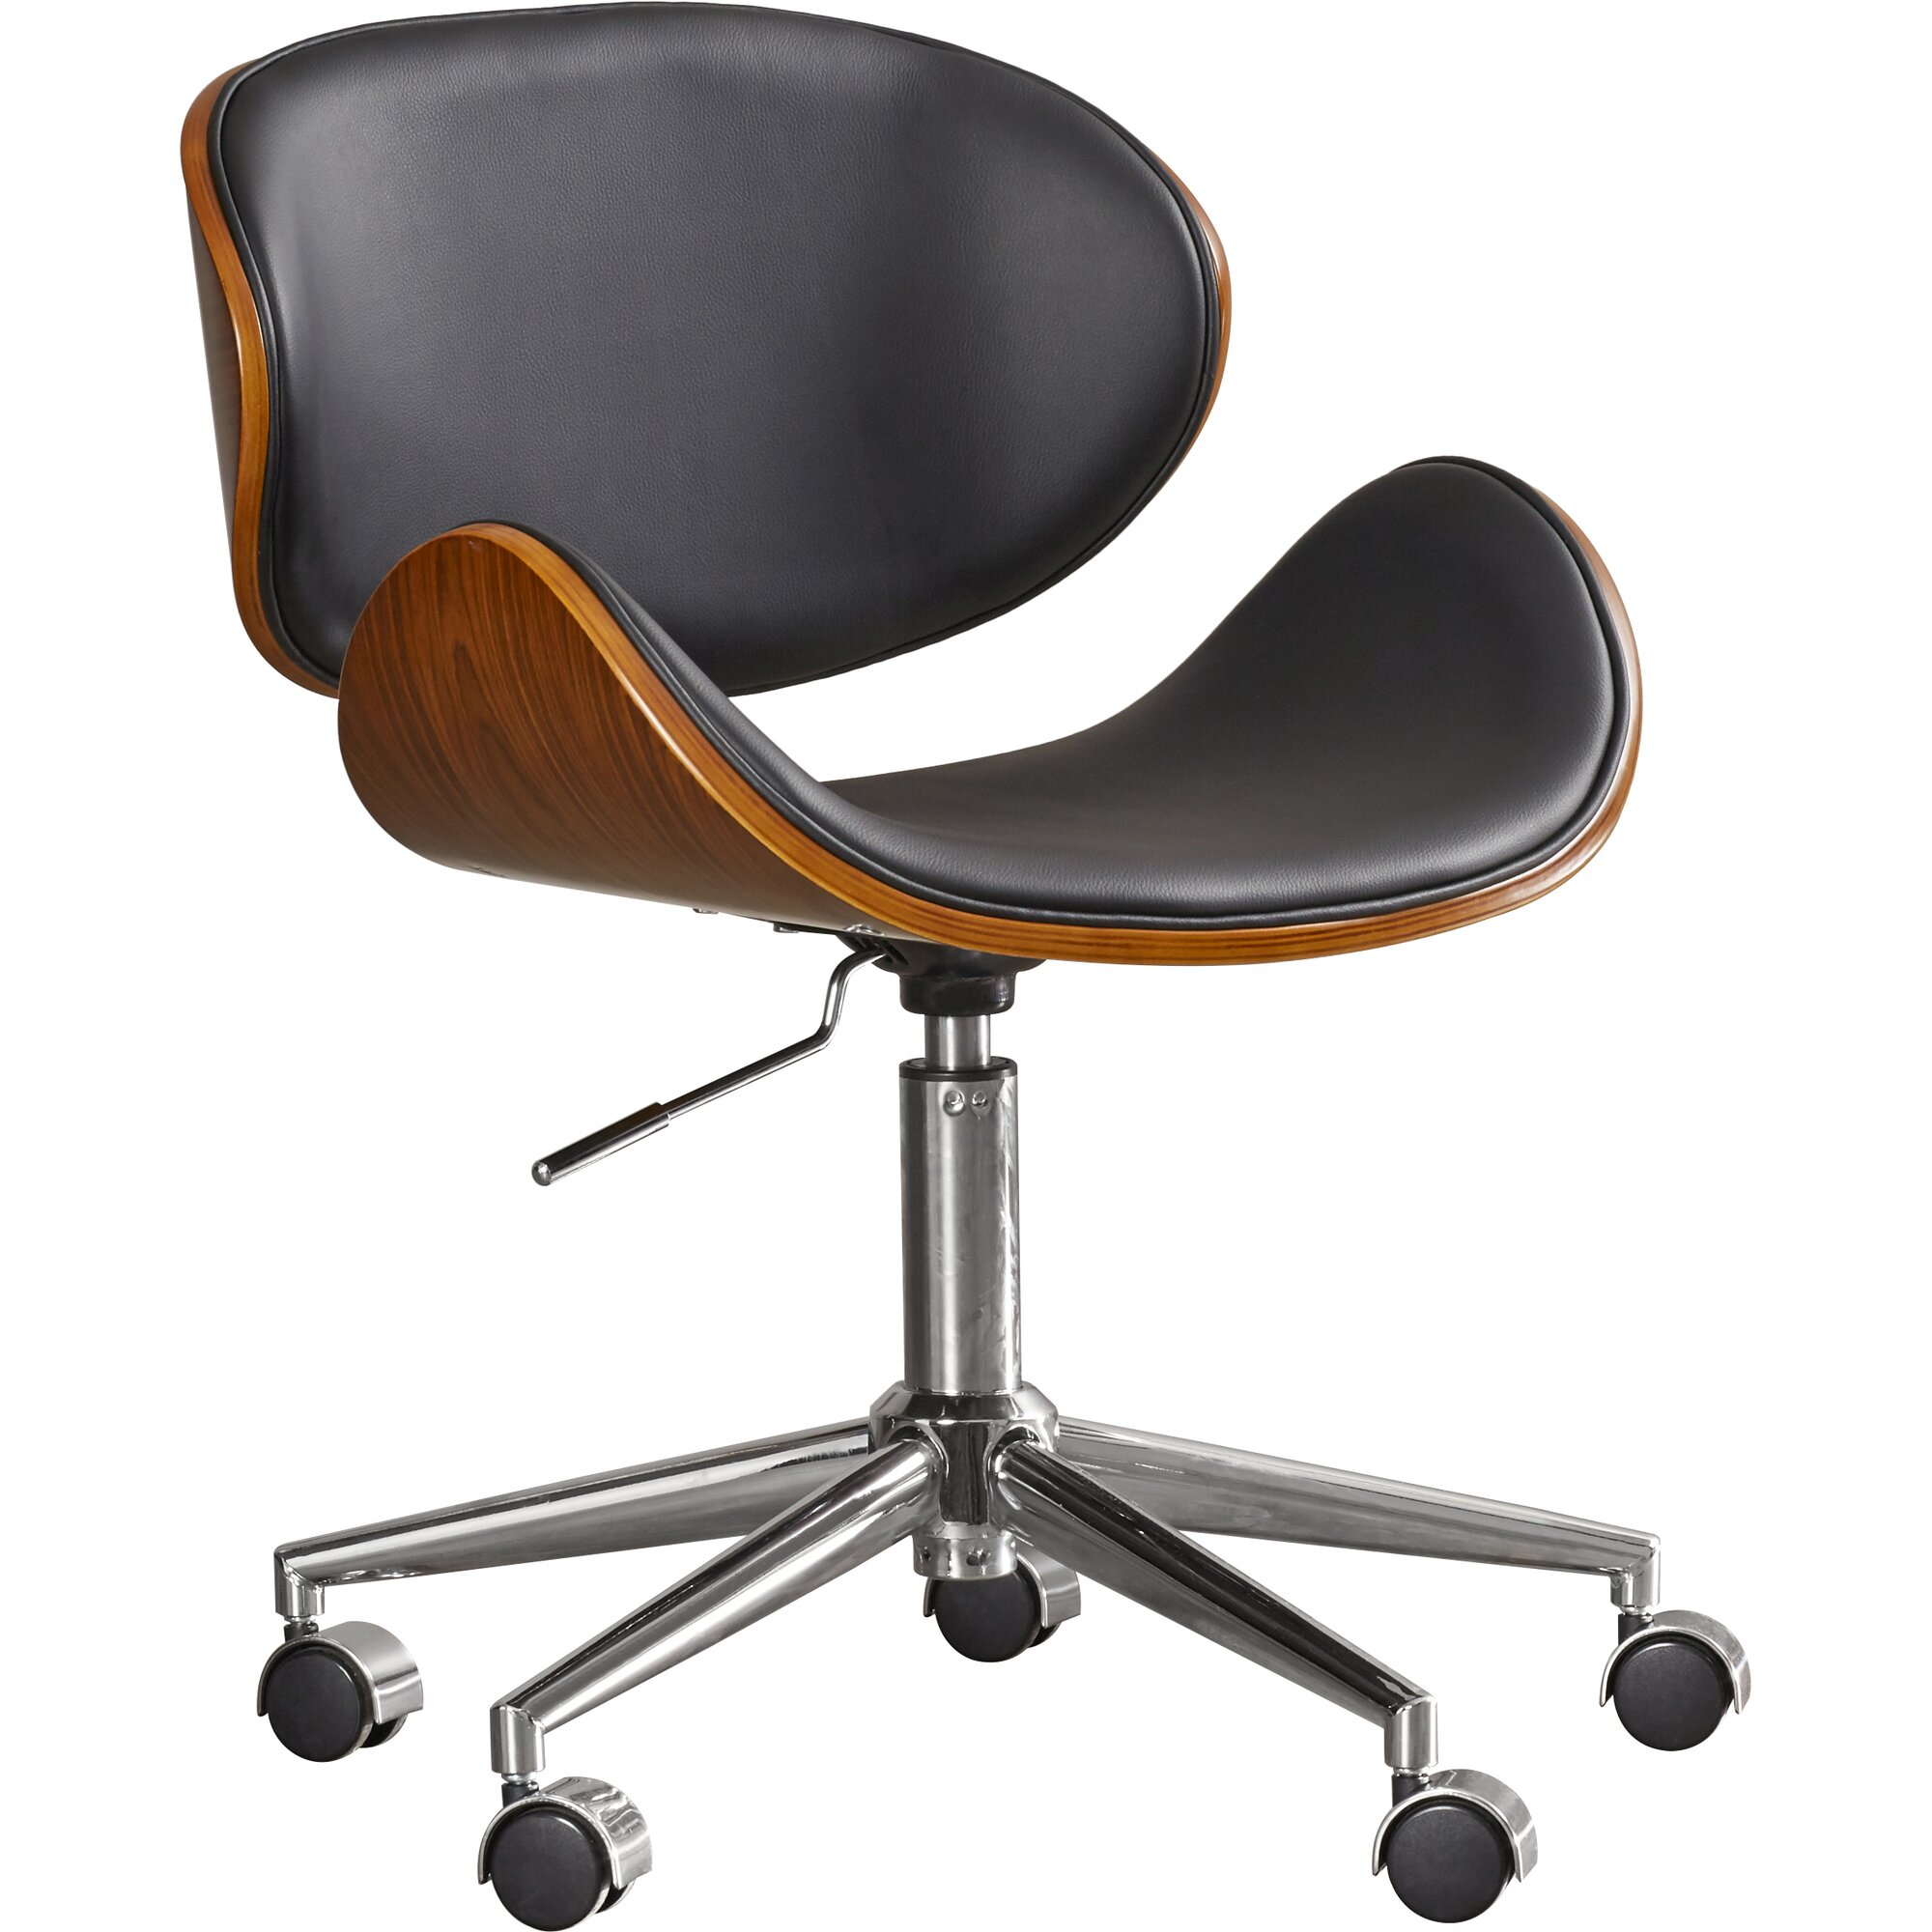 Tan leather office chair -  Fresh Tan Leather Office Chair